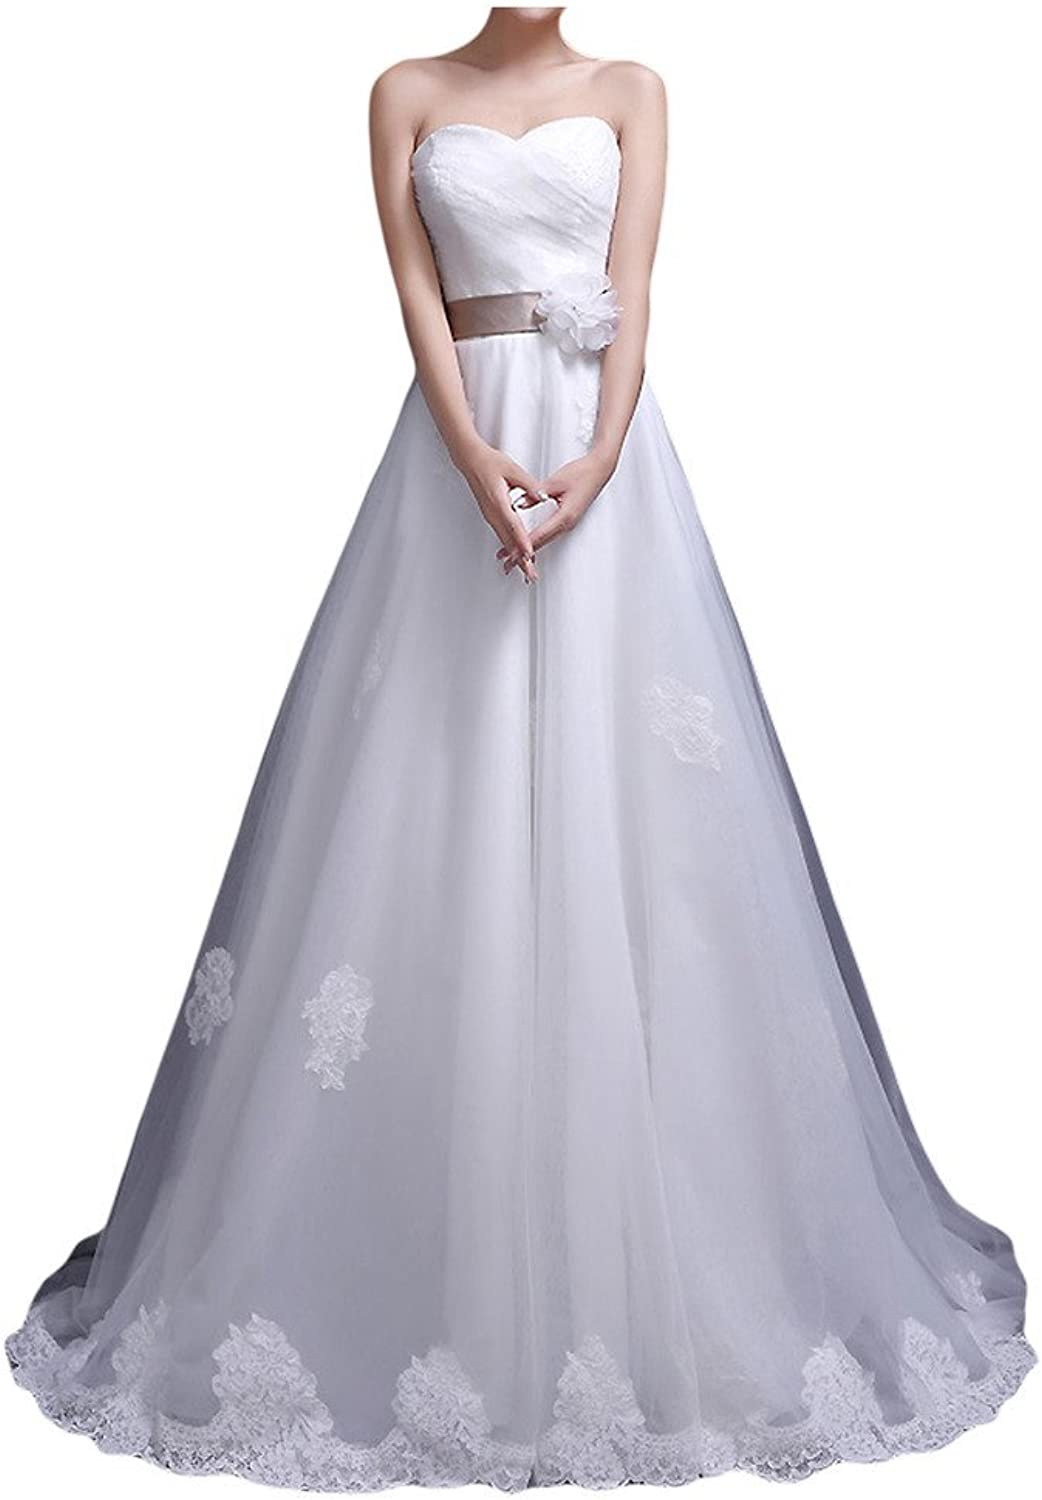 Avril Dress White Sweetheart Satin Appliques Bow Lace Up Princess Wedding Gown